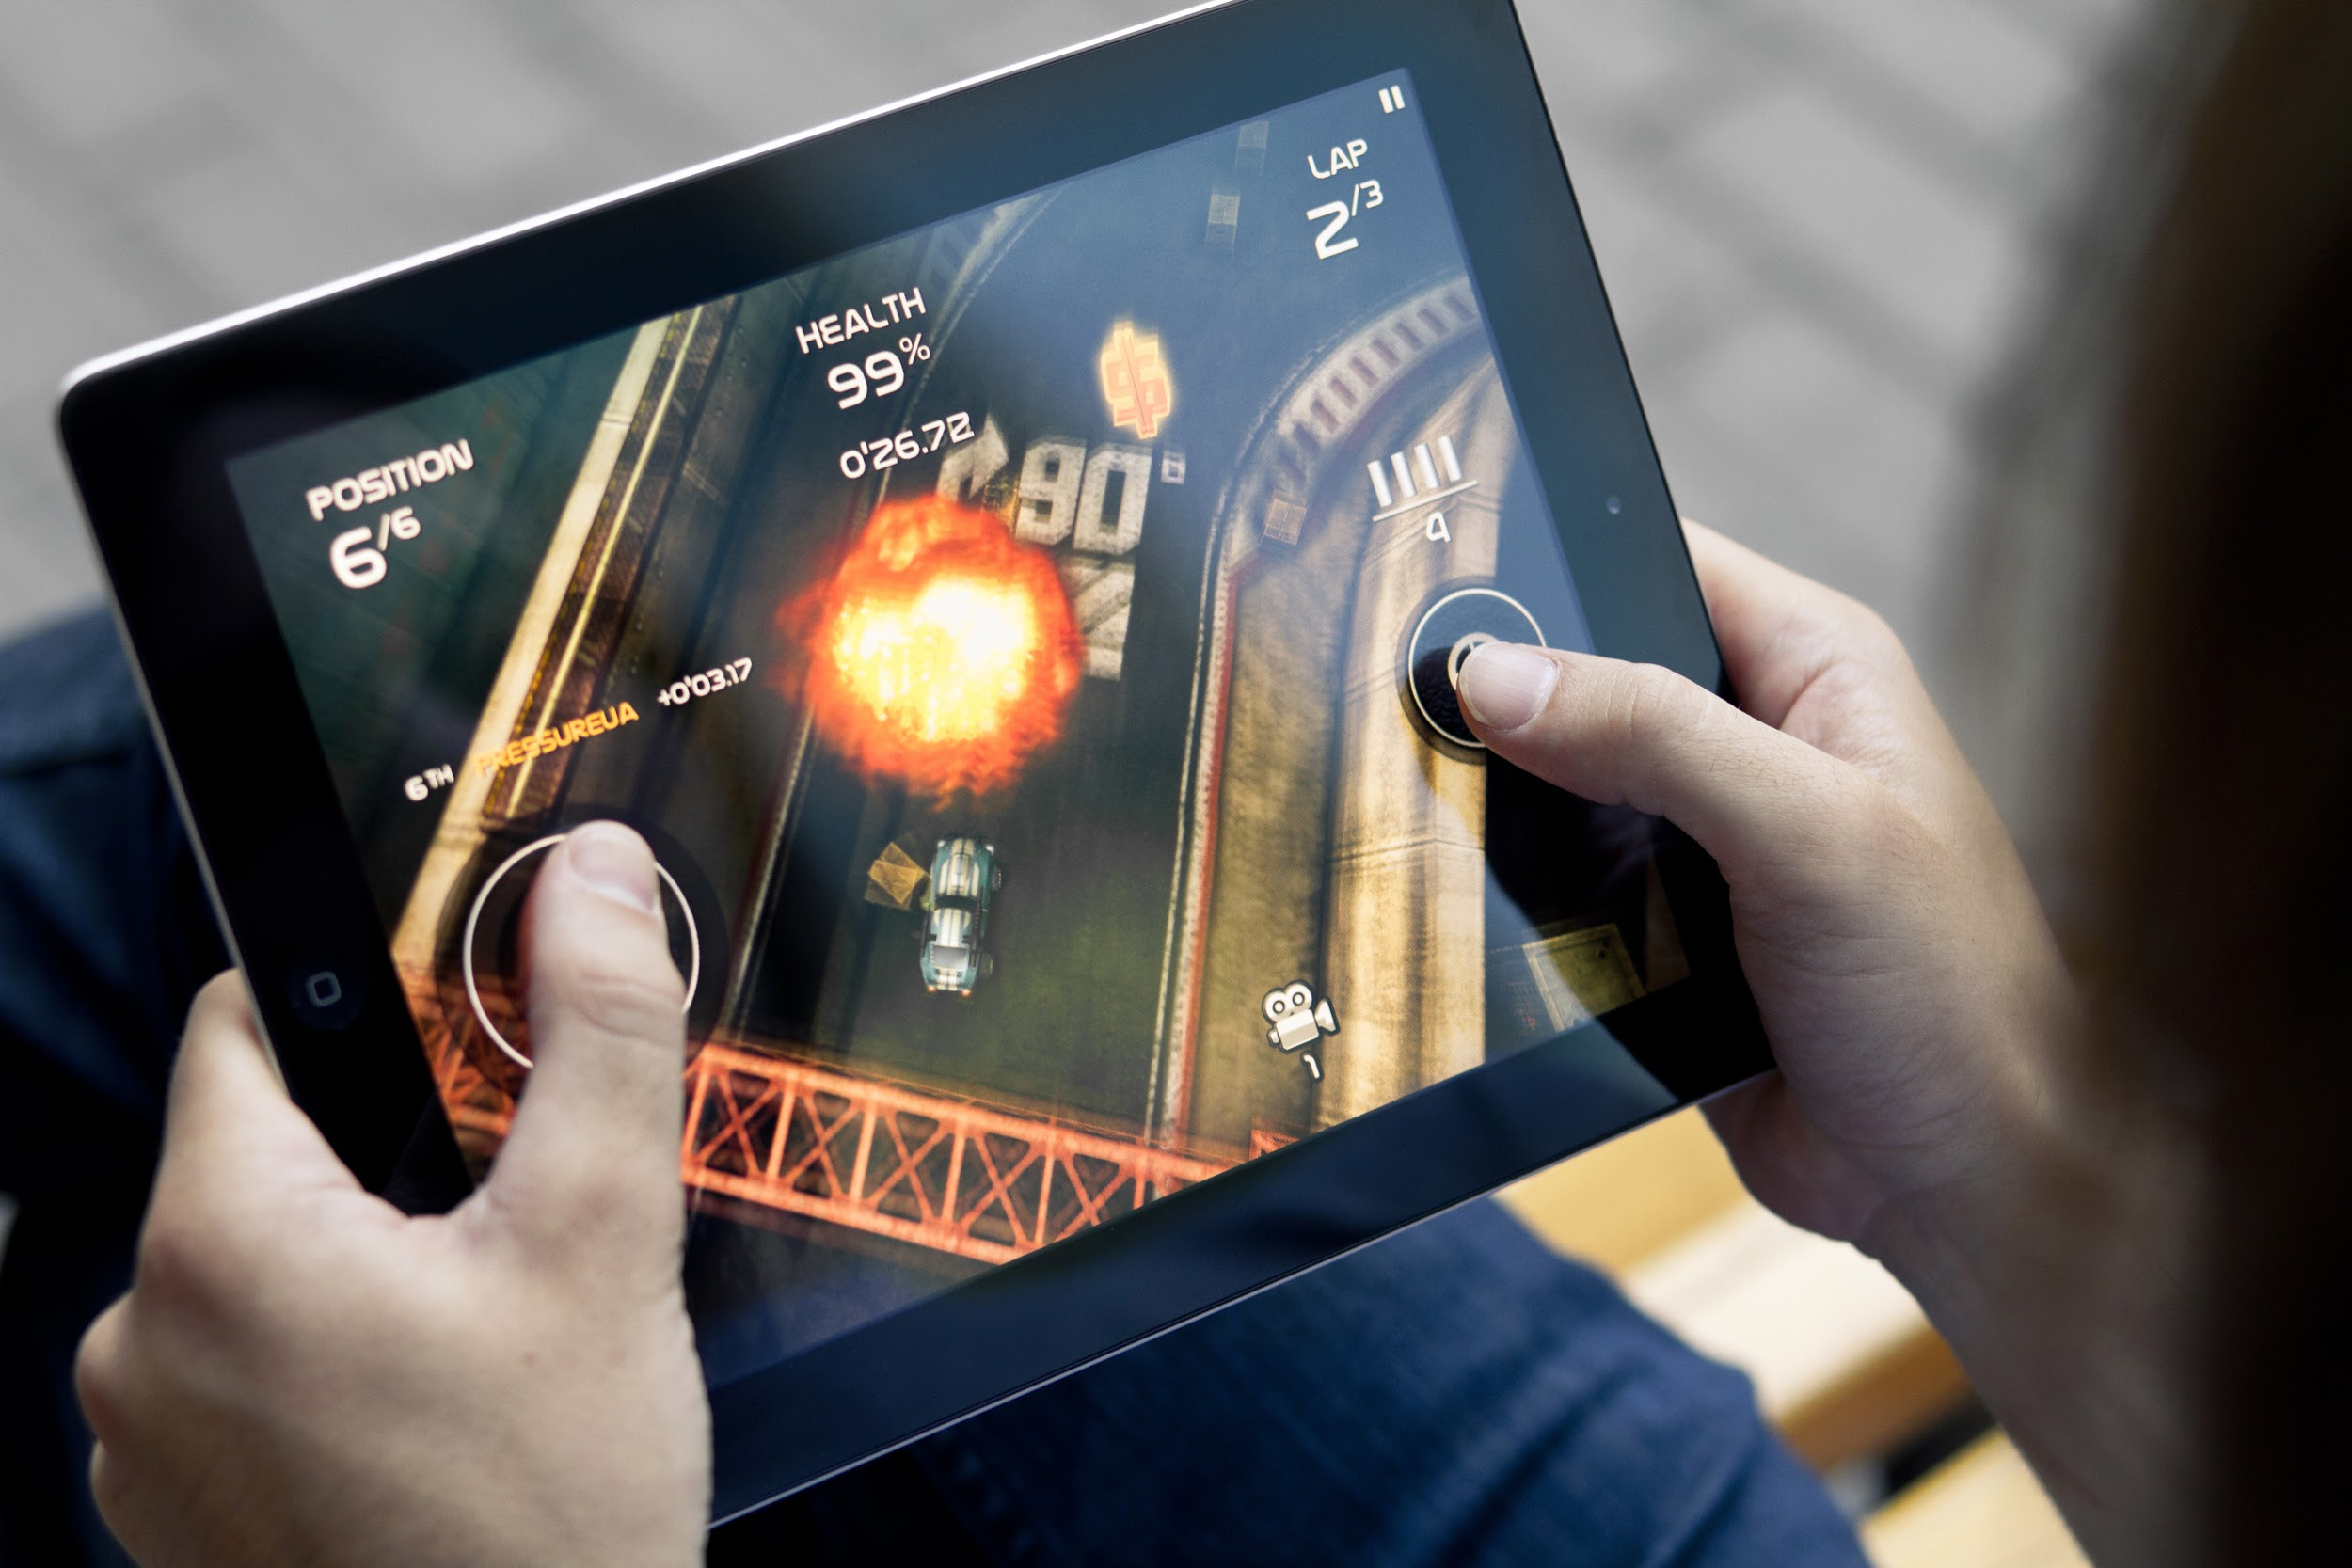 Man playing mobile game, Death Rally on a Apple iPad.